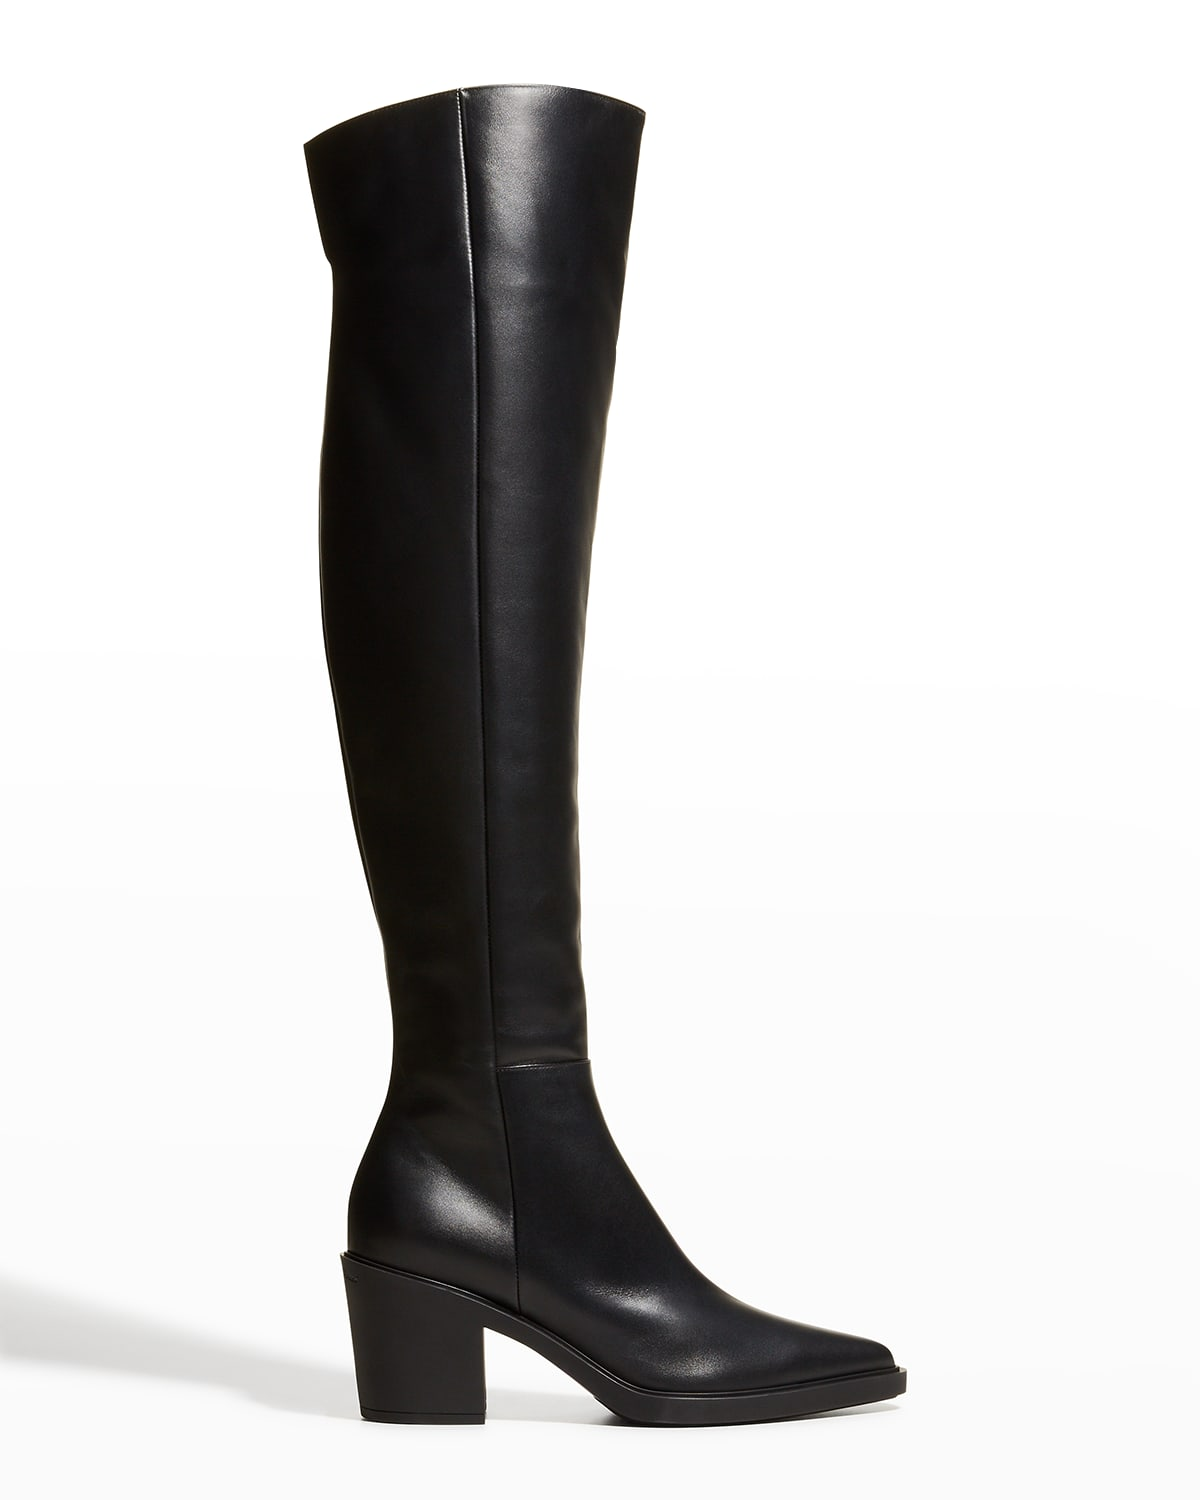 Dylan Cuissard Vitello Glove Over-the-Knee Boots